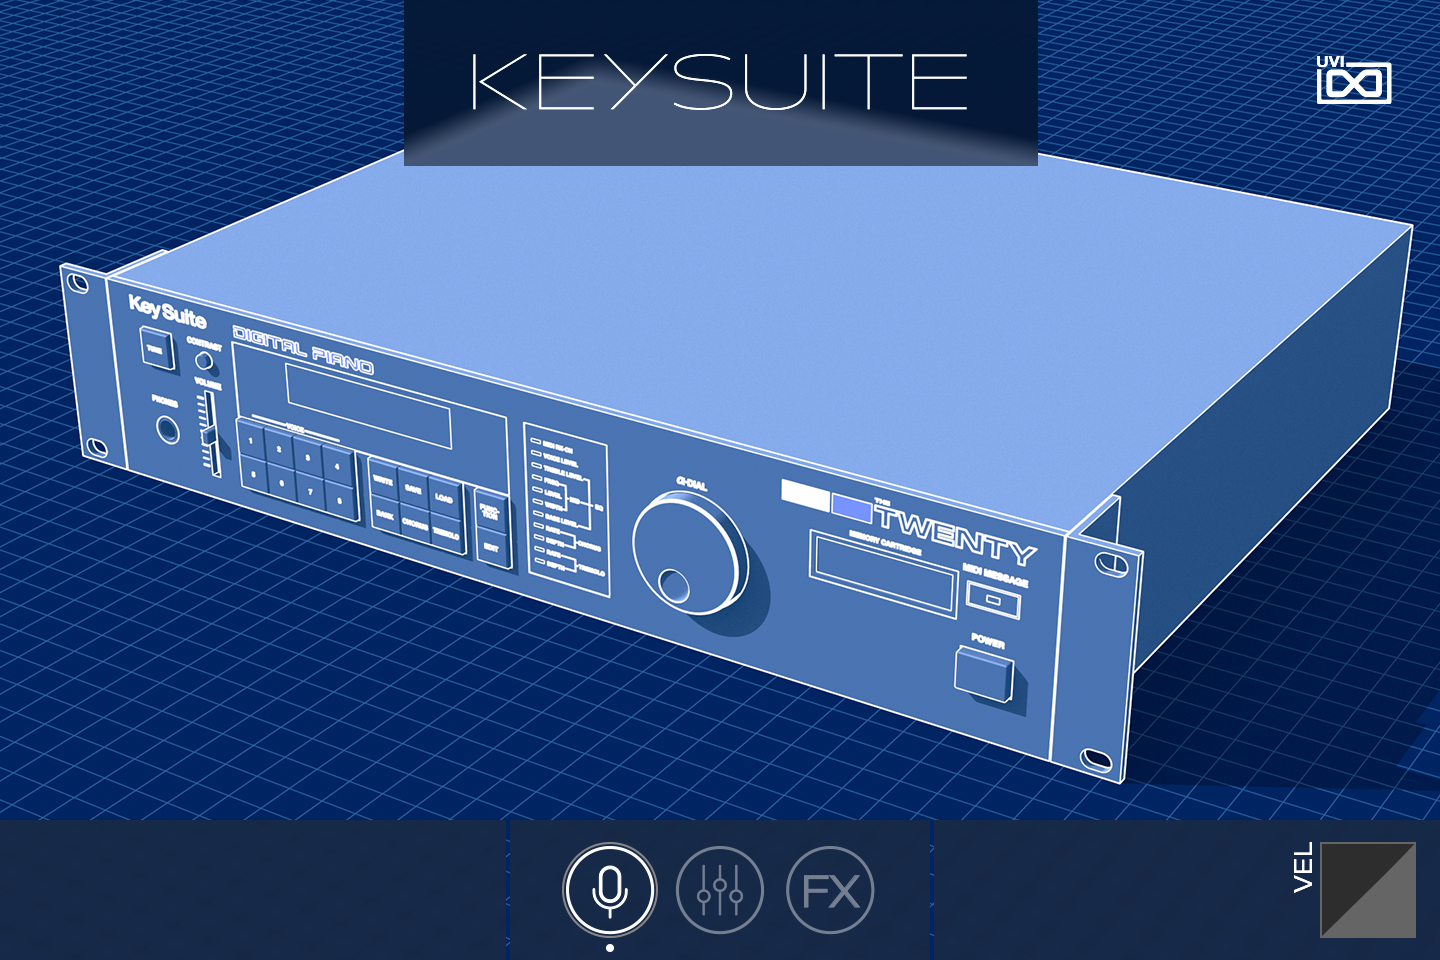 Key Suite Digital | The Twenty GUI